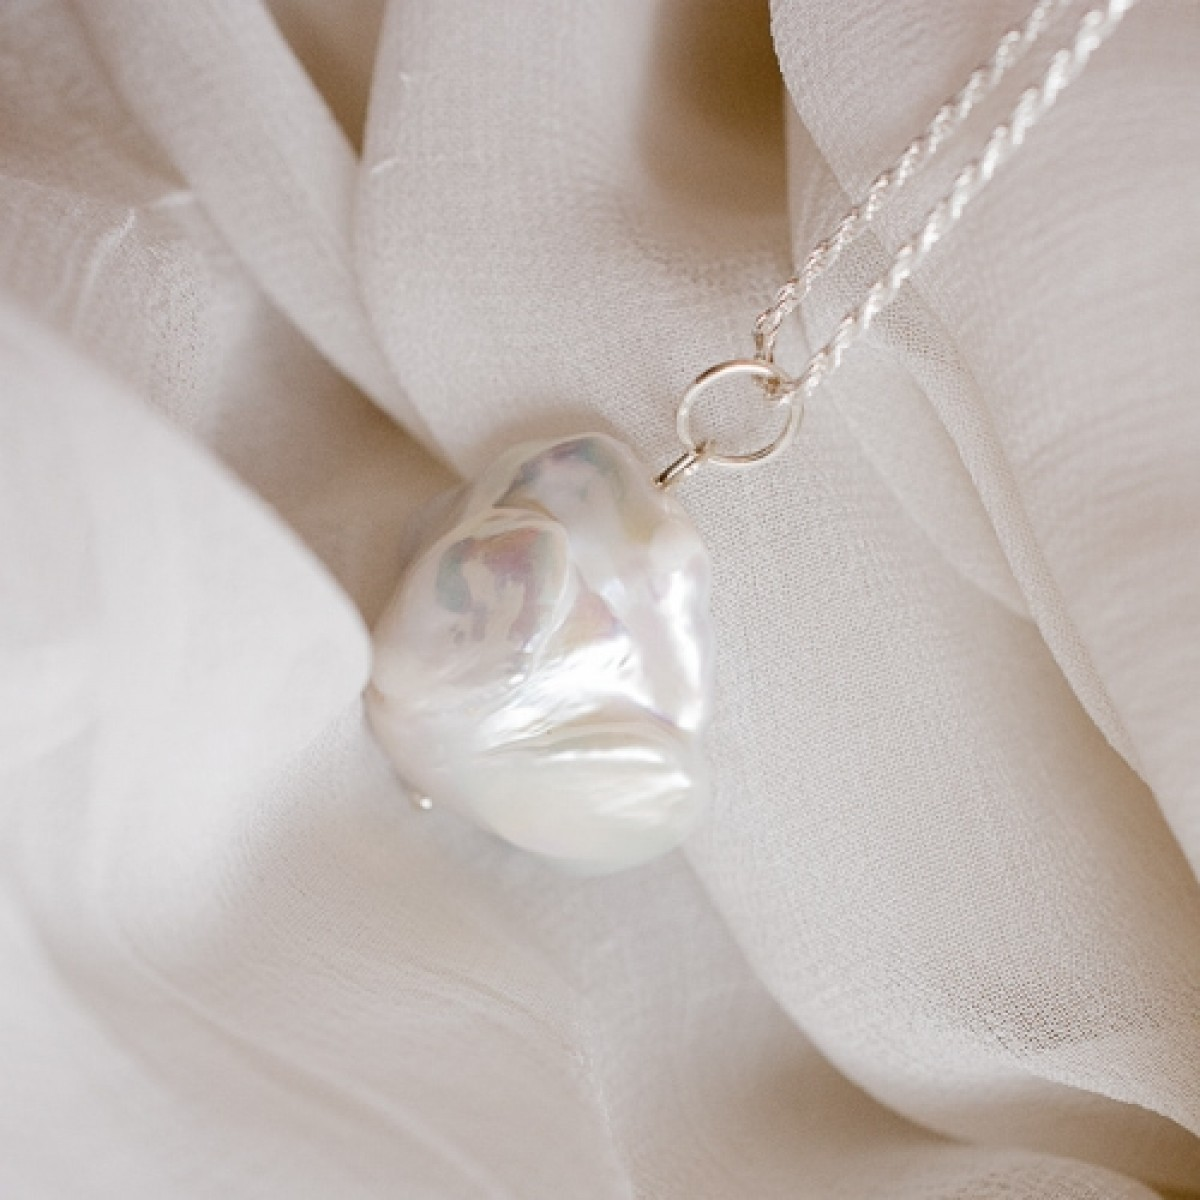 The Imperfection Pendant